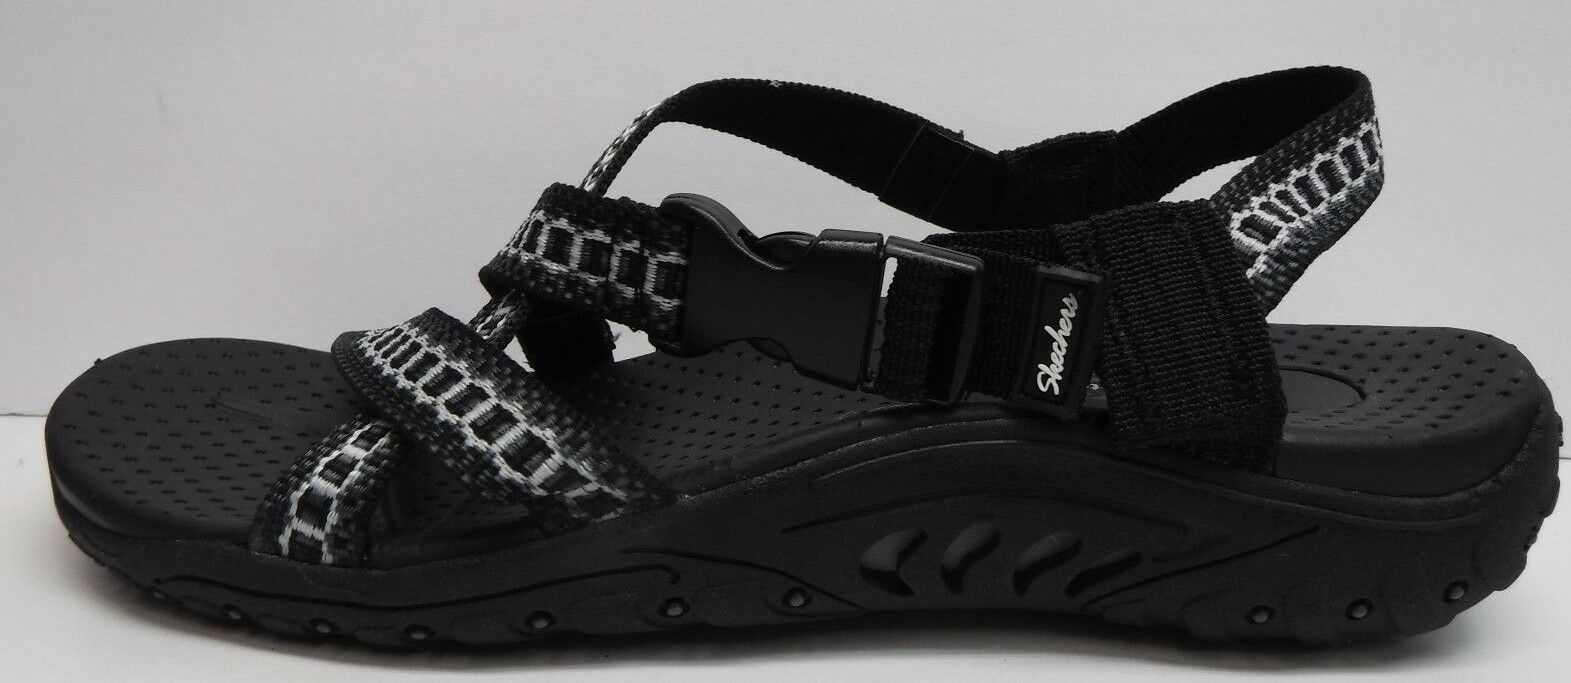 Skechers Size 10 Black Sandals New Womens shoes